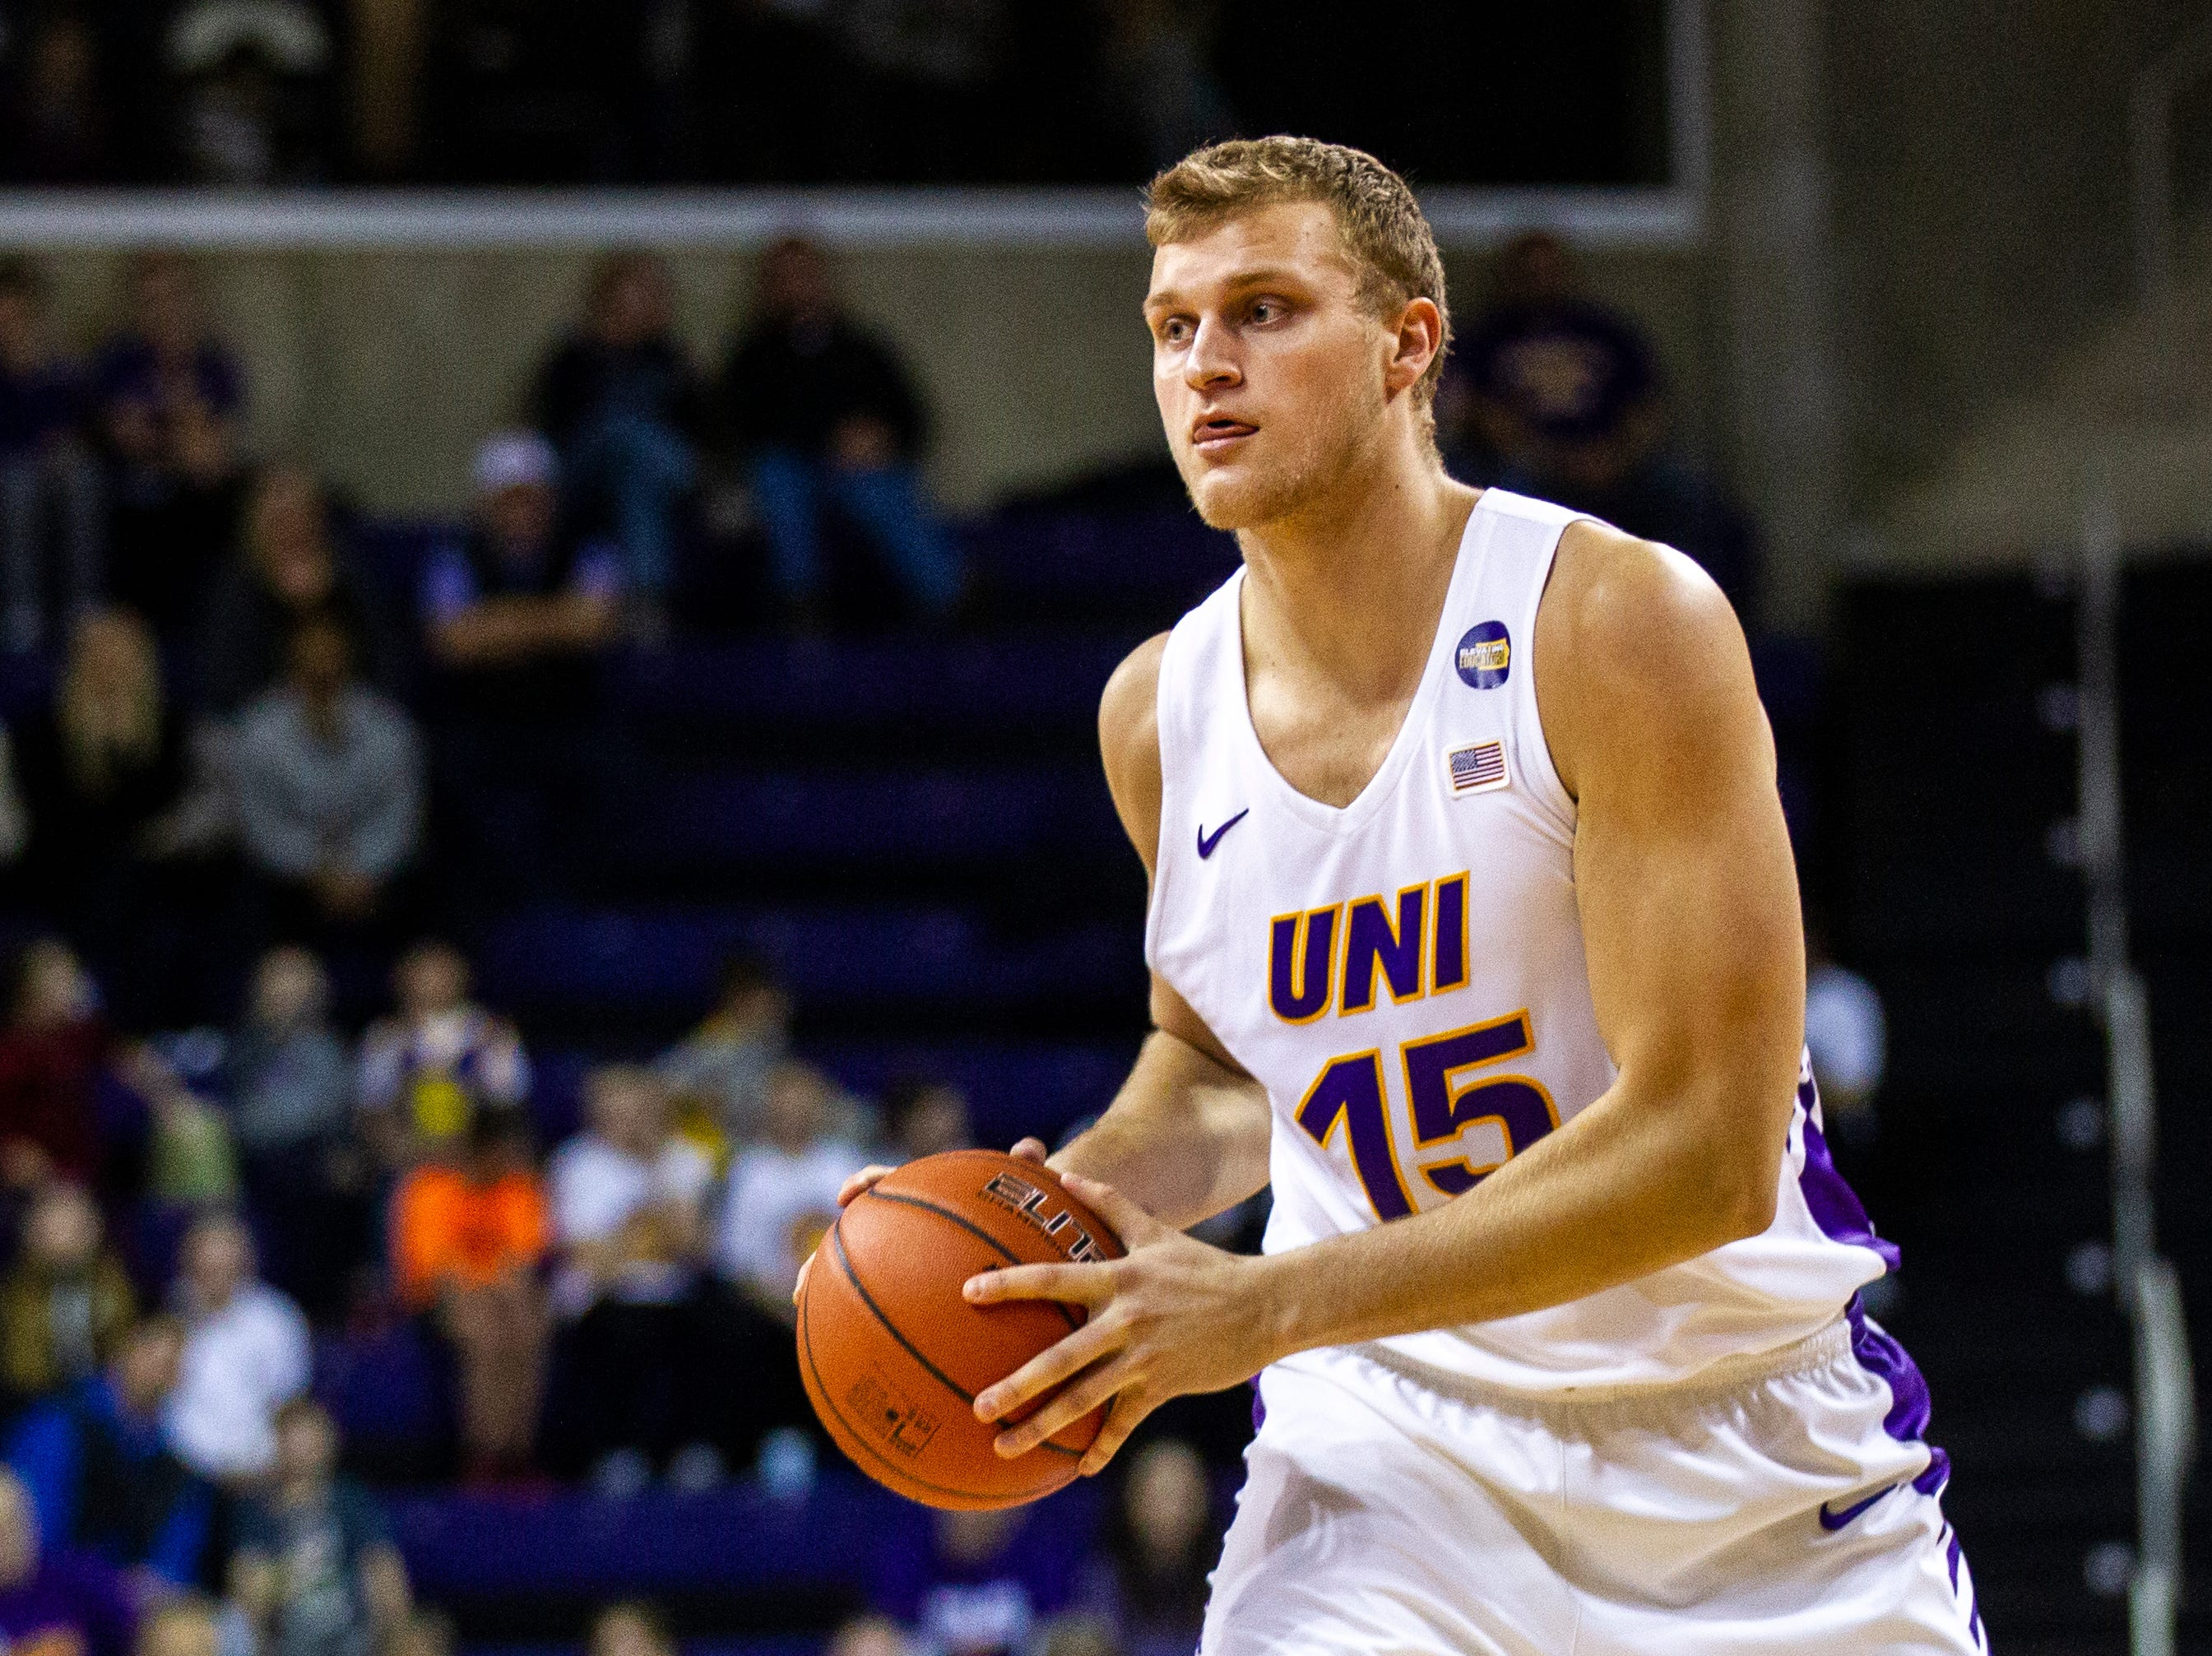 Northern Iowa center Justin Dahl (15) looks to pass during a NCAA Missouri Valley Conference men's basketball game on Saturday, Jan. 5, 2019, at the McLeod Center in Cedar Falls, Iowa.